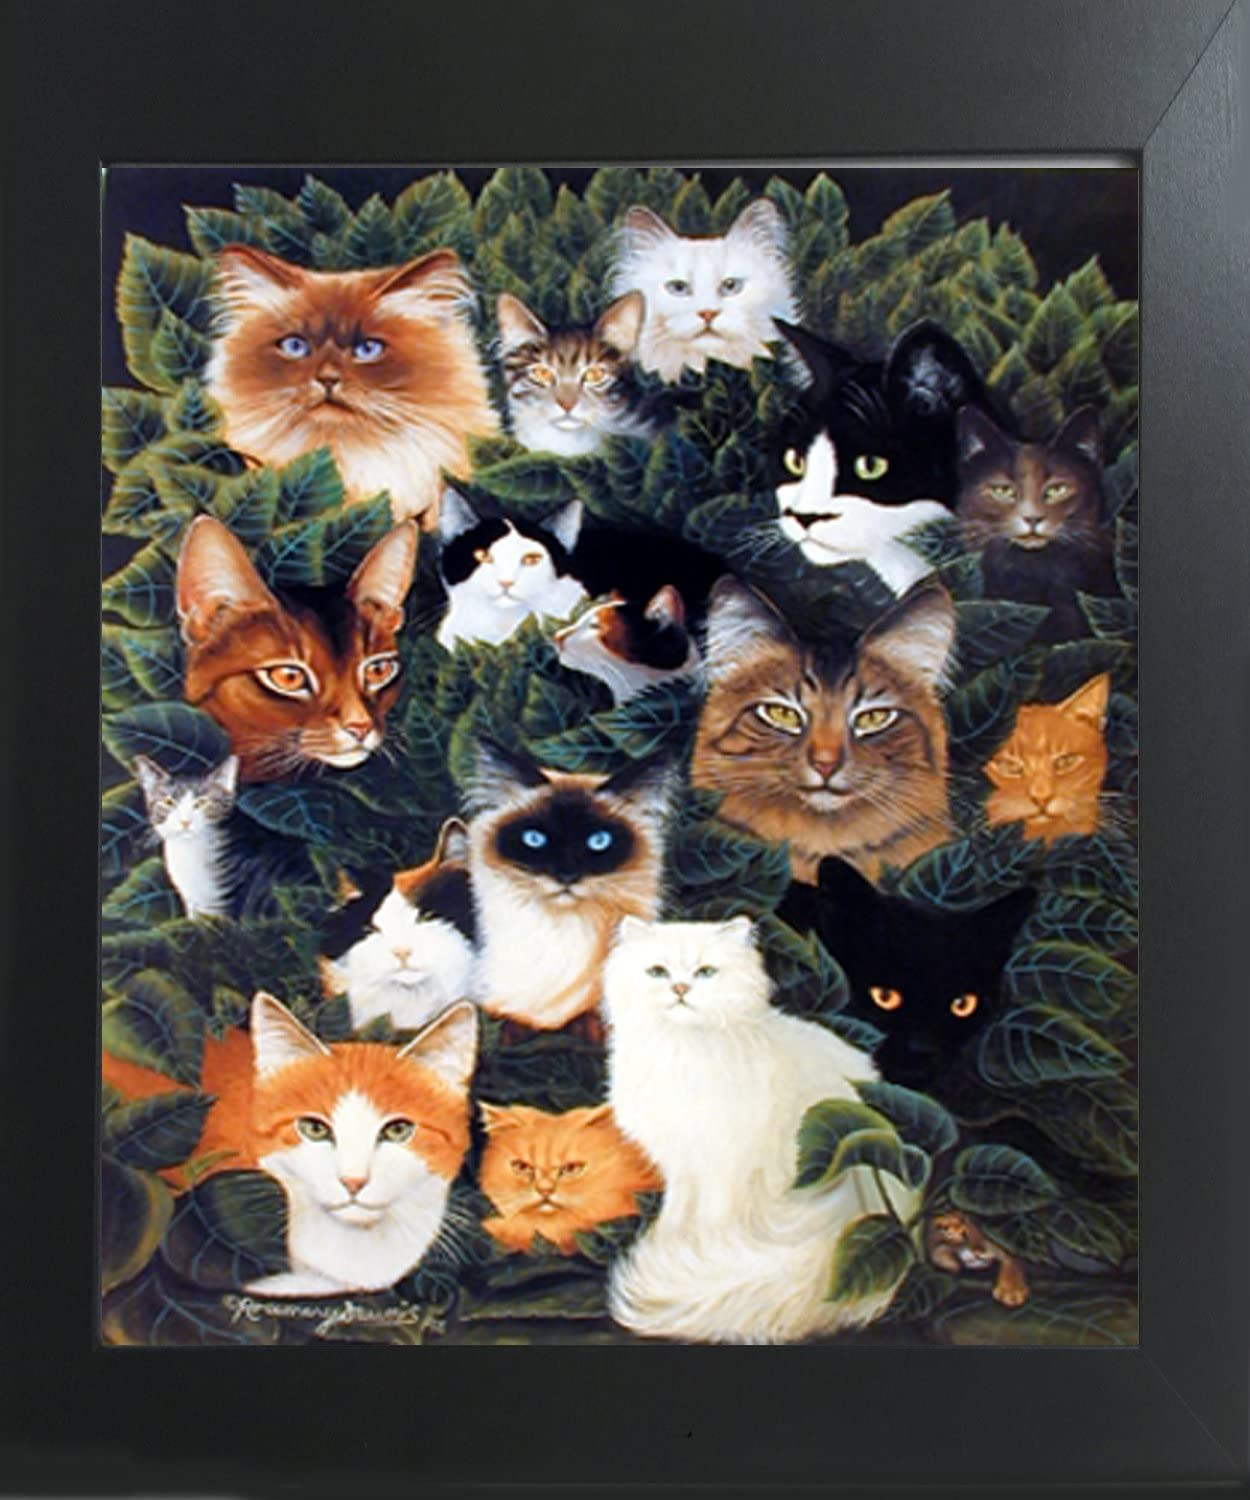 Amazon Com Impact Posters Gallery Cute Cat Collage Funny Animal Contemporary Black Art Print Framed Wall Decoration Picture 20x24 Posters Prints